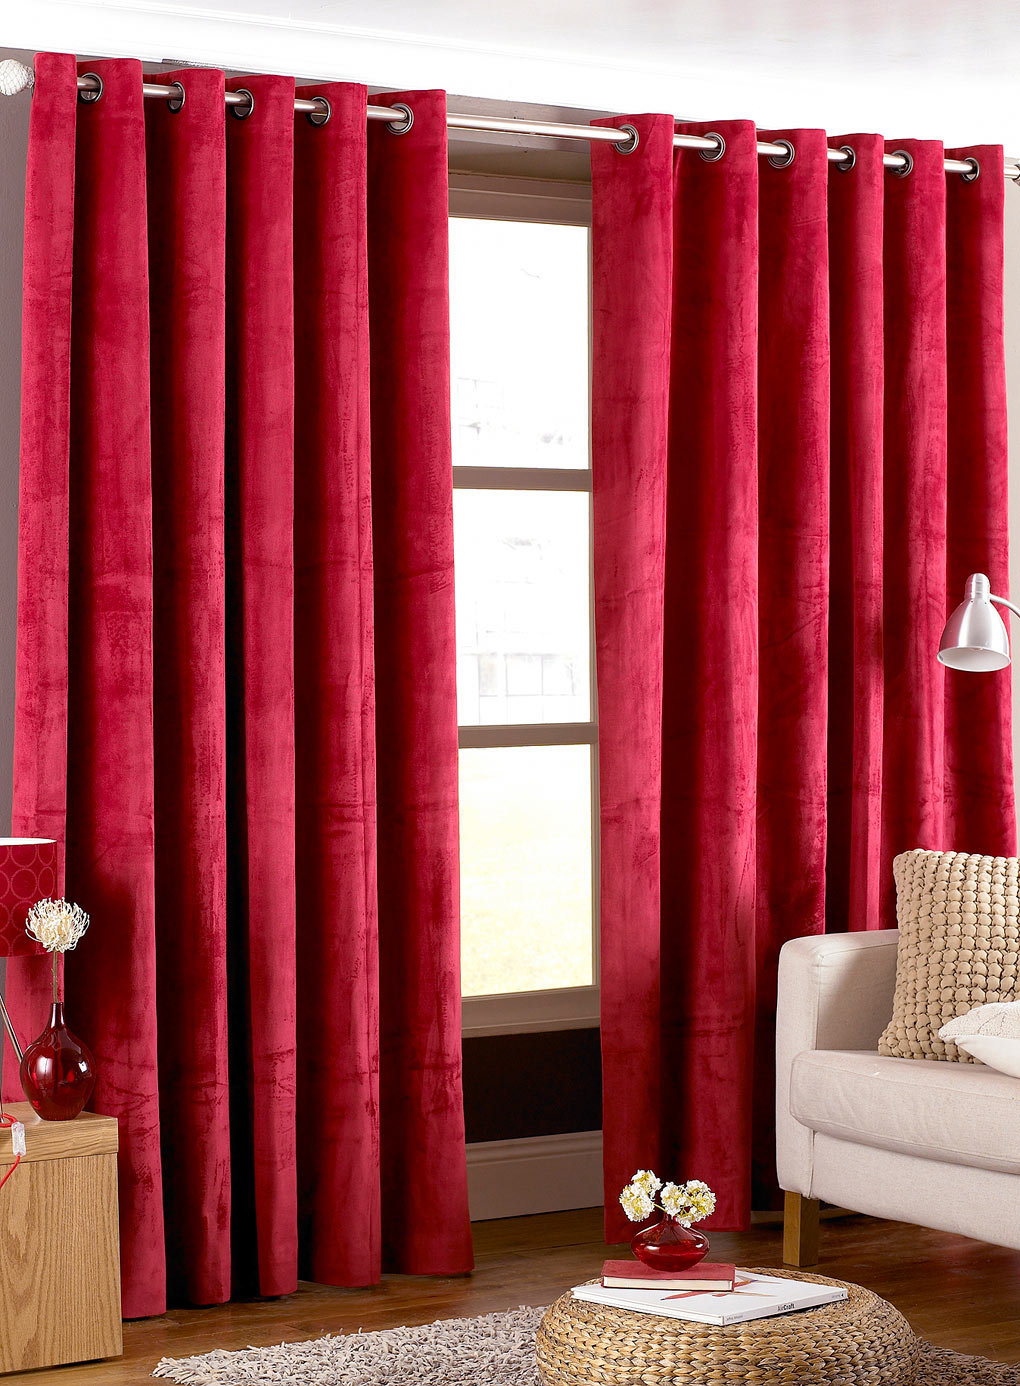 Latest-red-and-gray-striped-curtains 20+ Hottest Curtain Designs for 2018